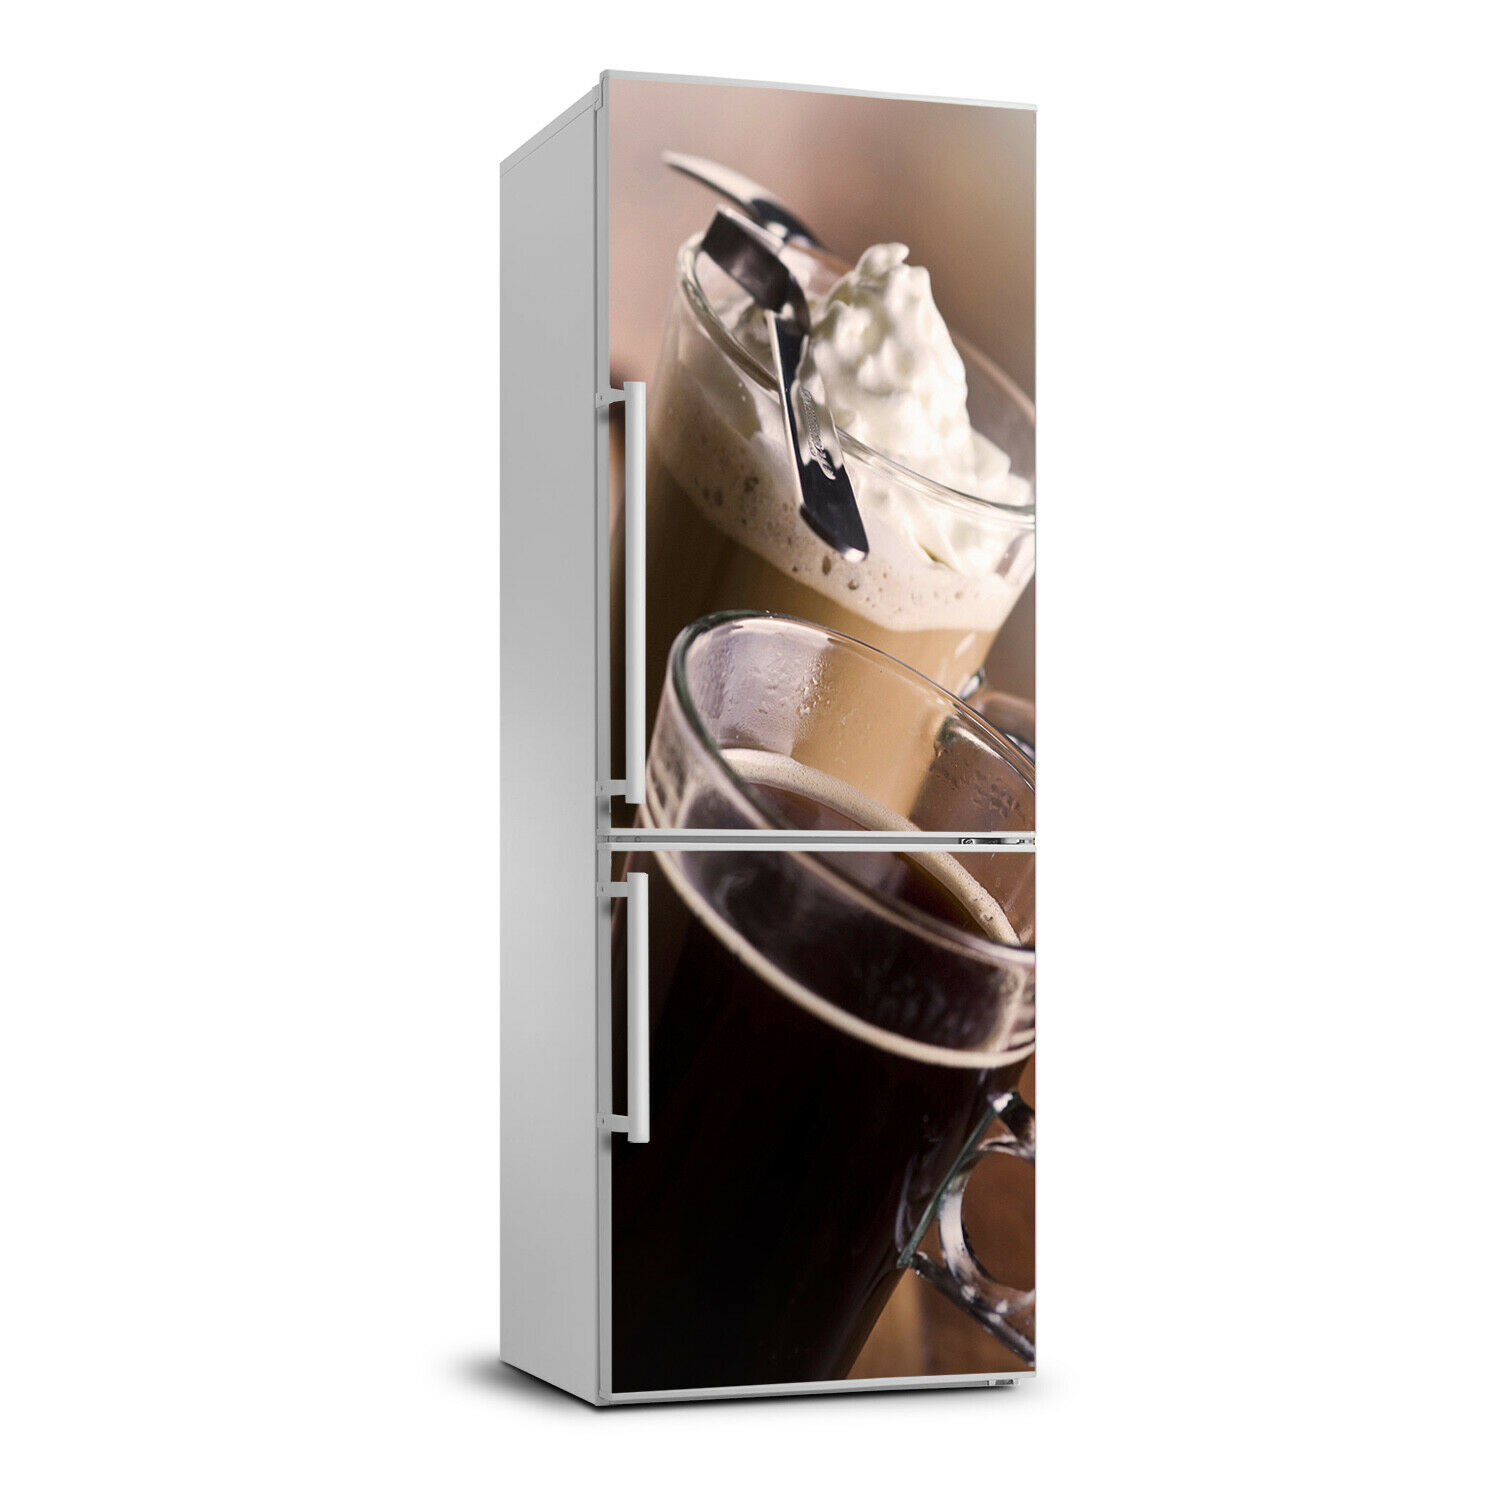 3D  Fridge Wall Self Adhesive Removable Sticker Decal Food Frappe coffee